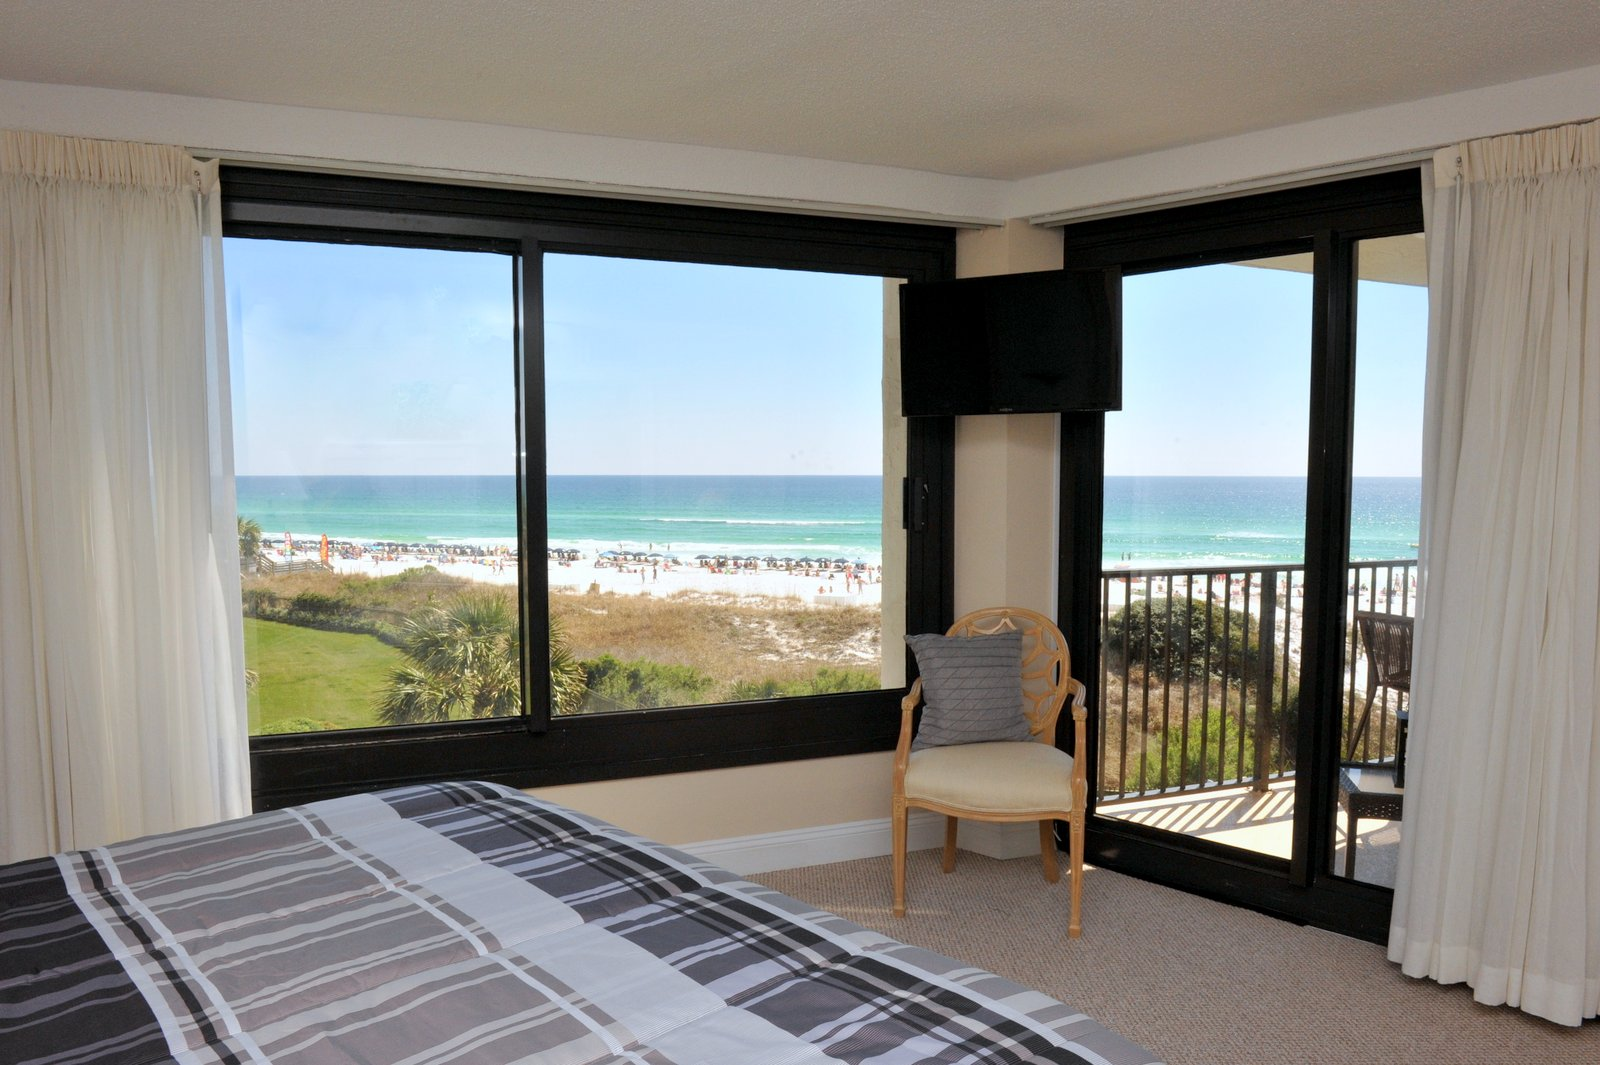 4048 Beachside One Condo rental in Beachside Towers at Sandestin in Destin Florida - #11